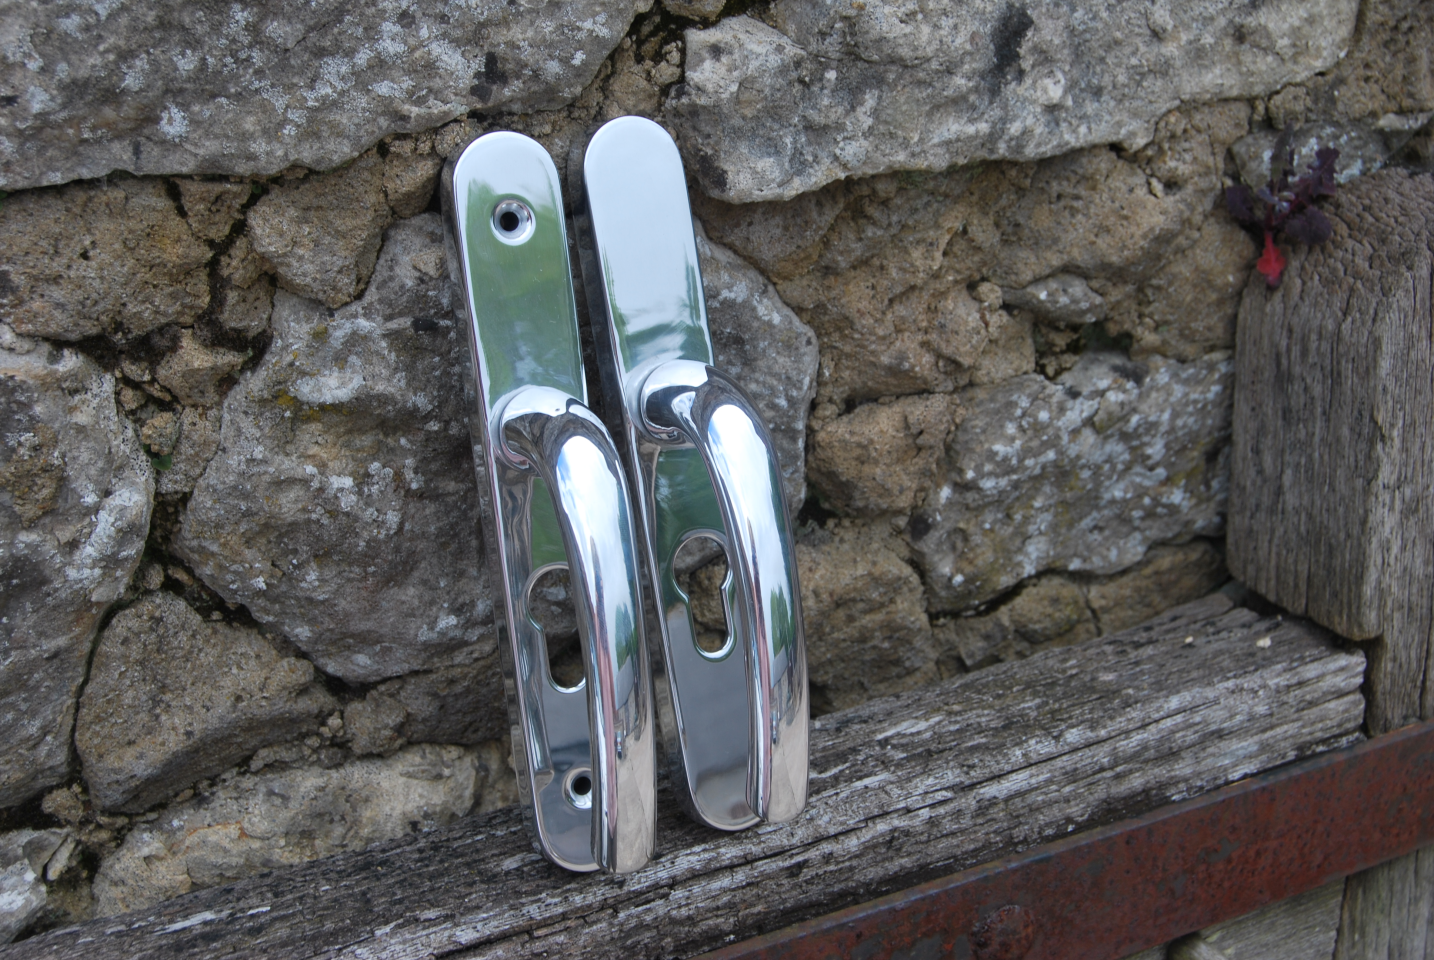 Picture of door handles restored with chroming.